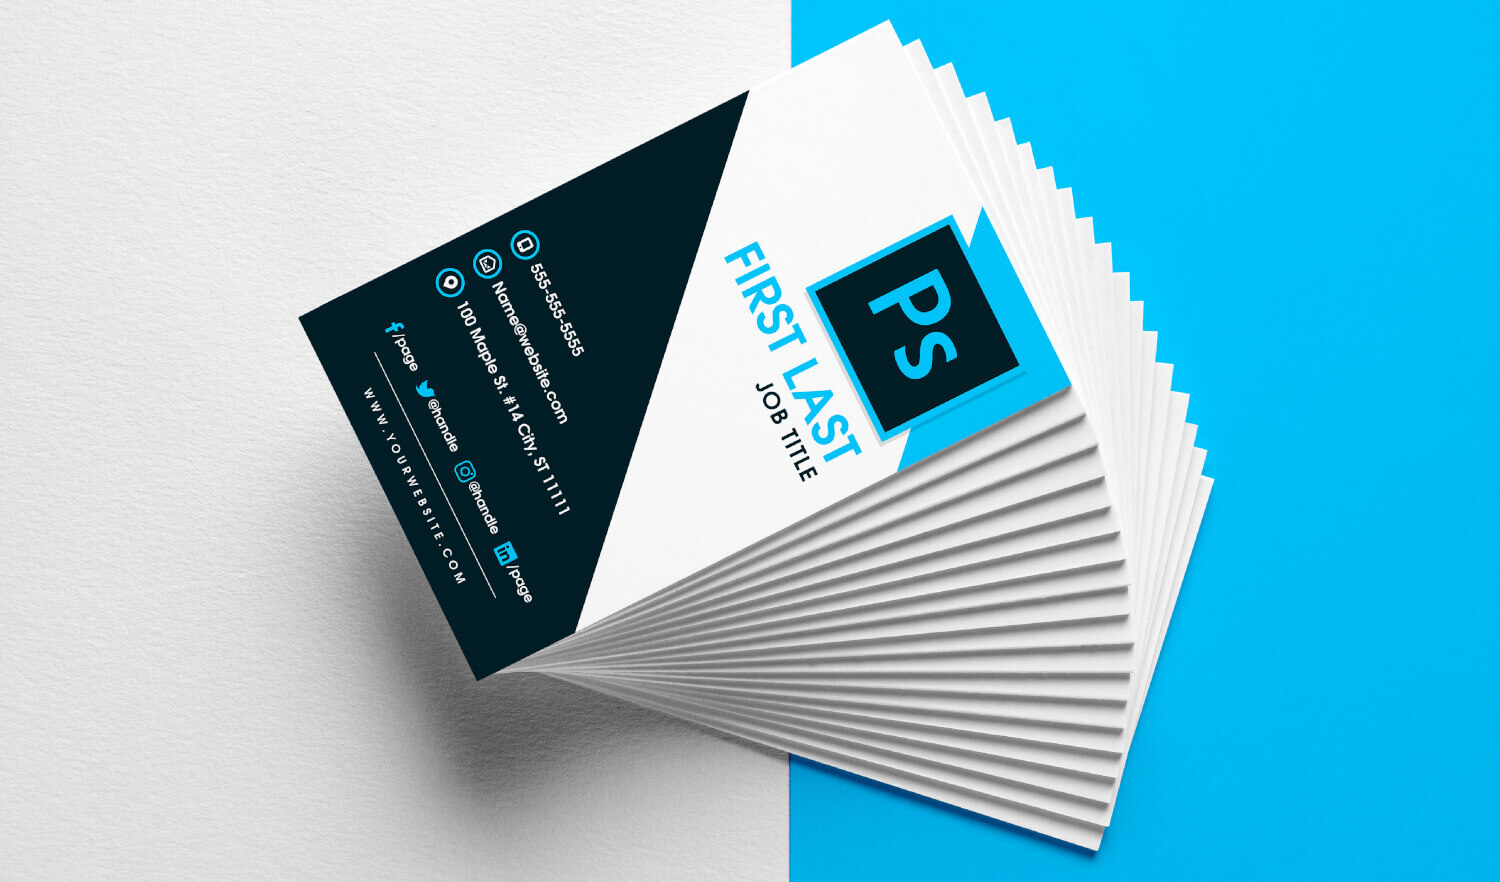 Free Vertical Business Card Template In Psd Format For Free Business Card Templates In Psd Format